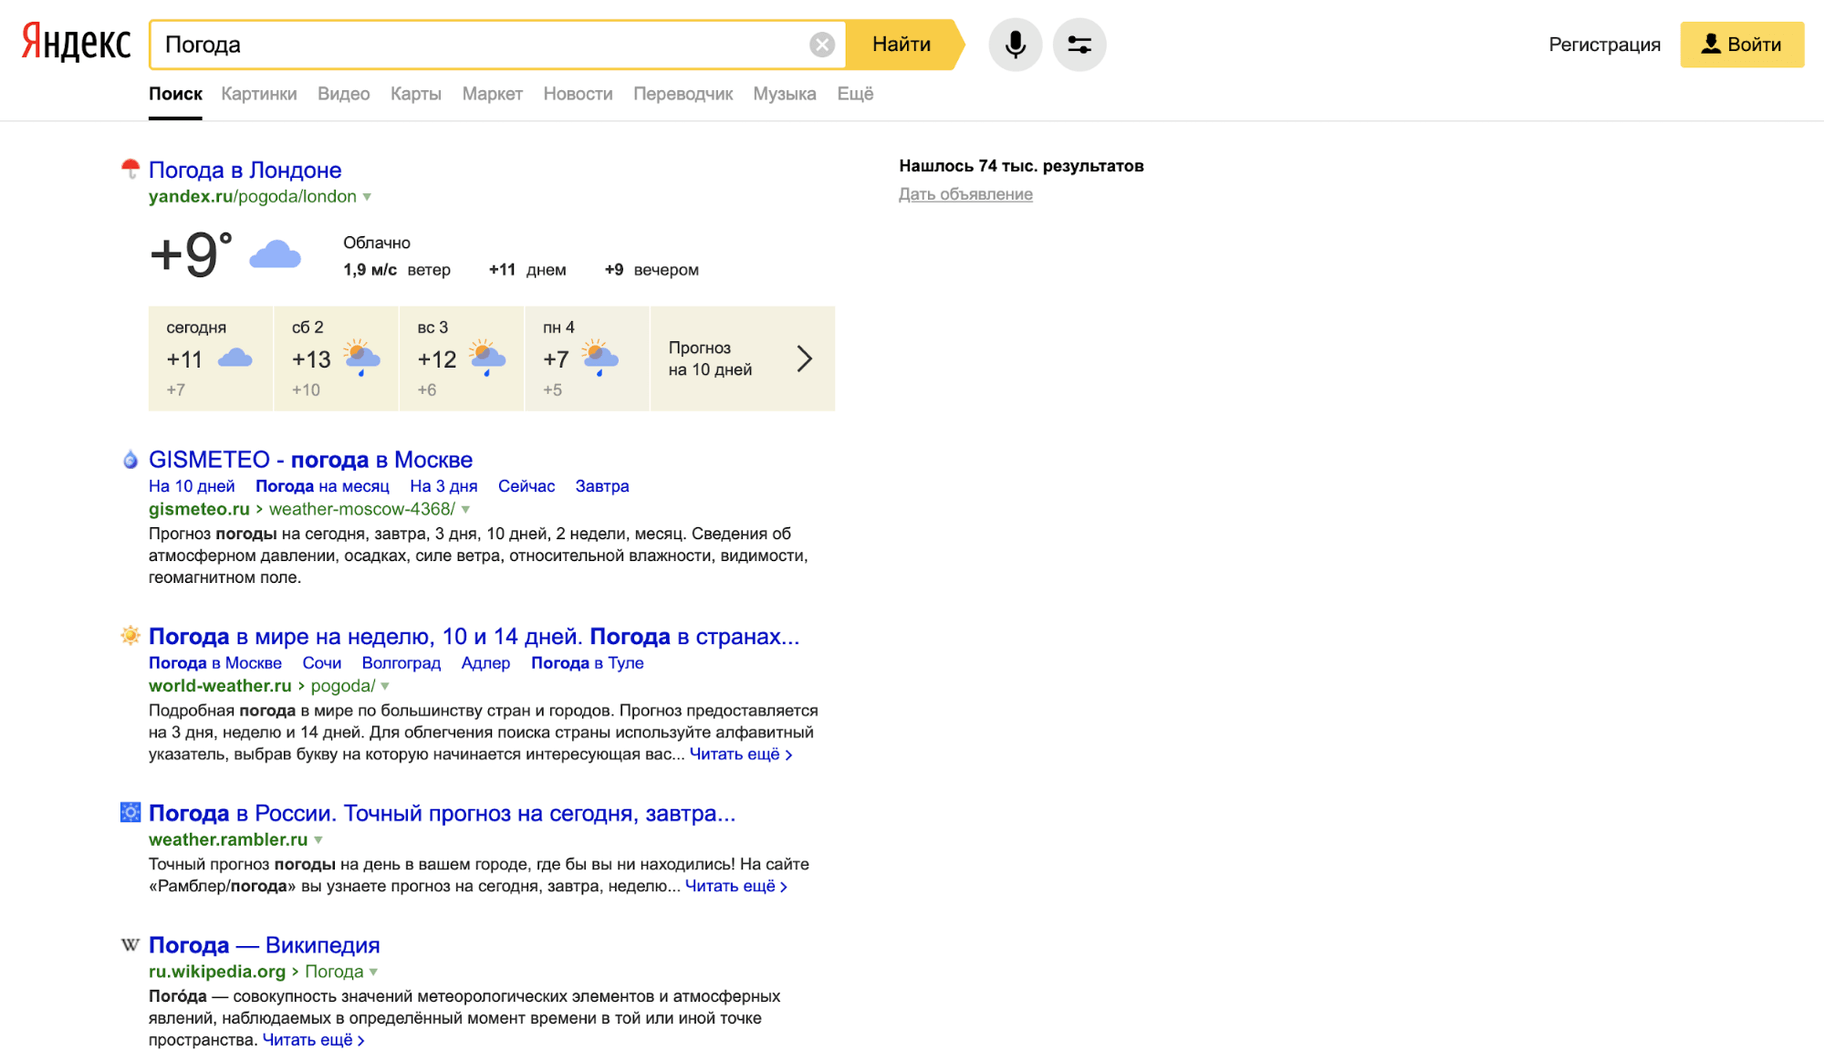 Yandex Search Engine Results